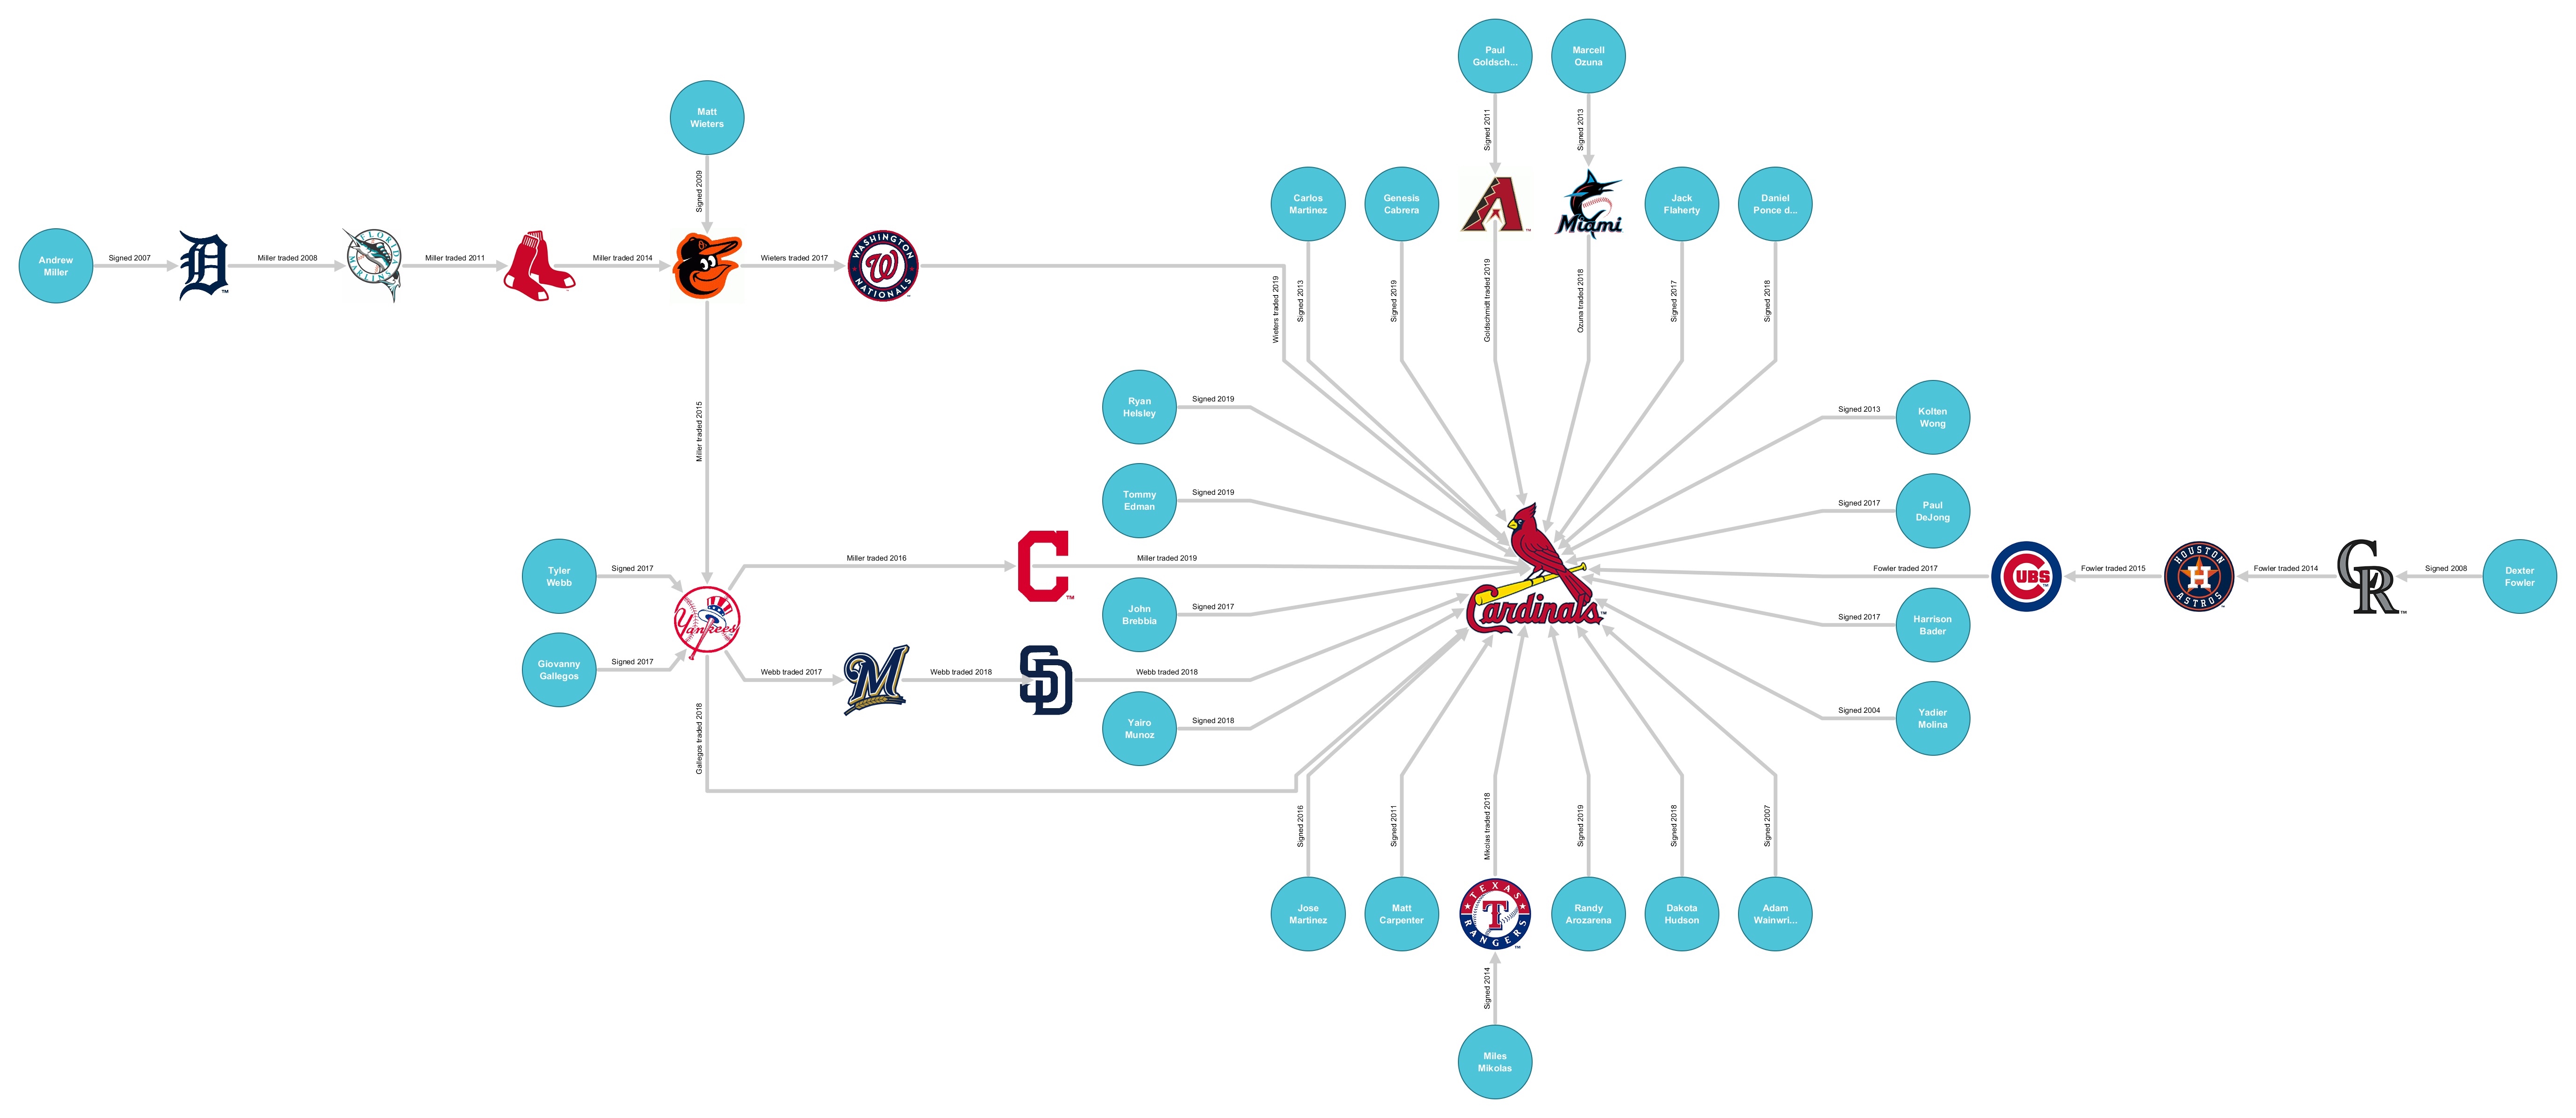 2019_10_21_2_Player_Migrations_StLouisCardinals_2019_Orthogonal_